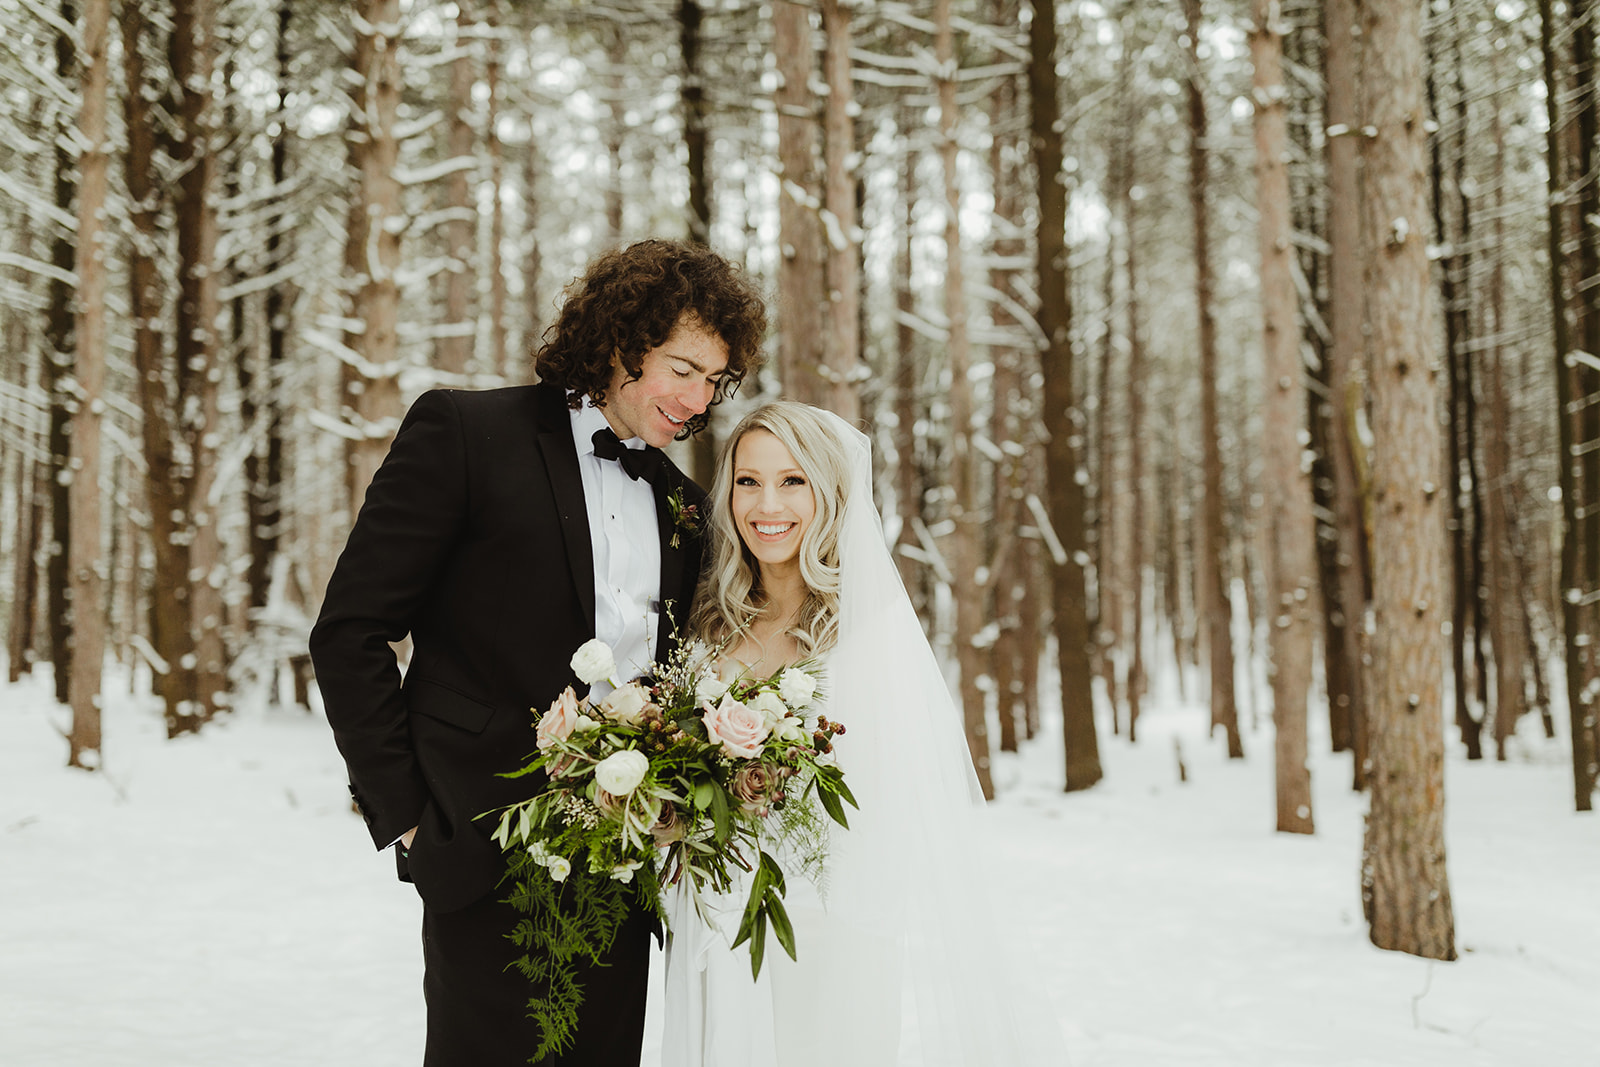 A bride smiling in the snowy woods after her Grand Rapids, Michigan wedding